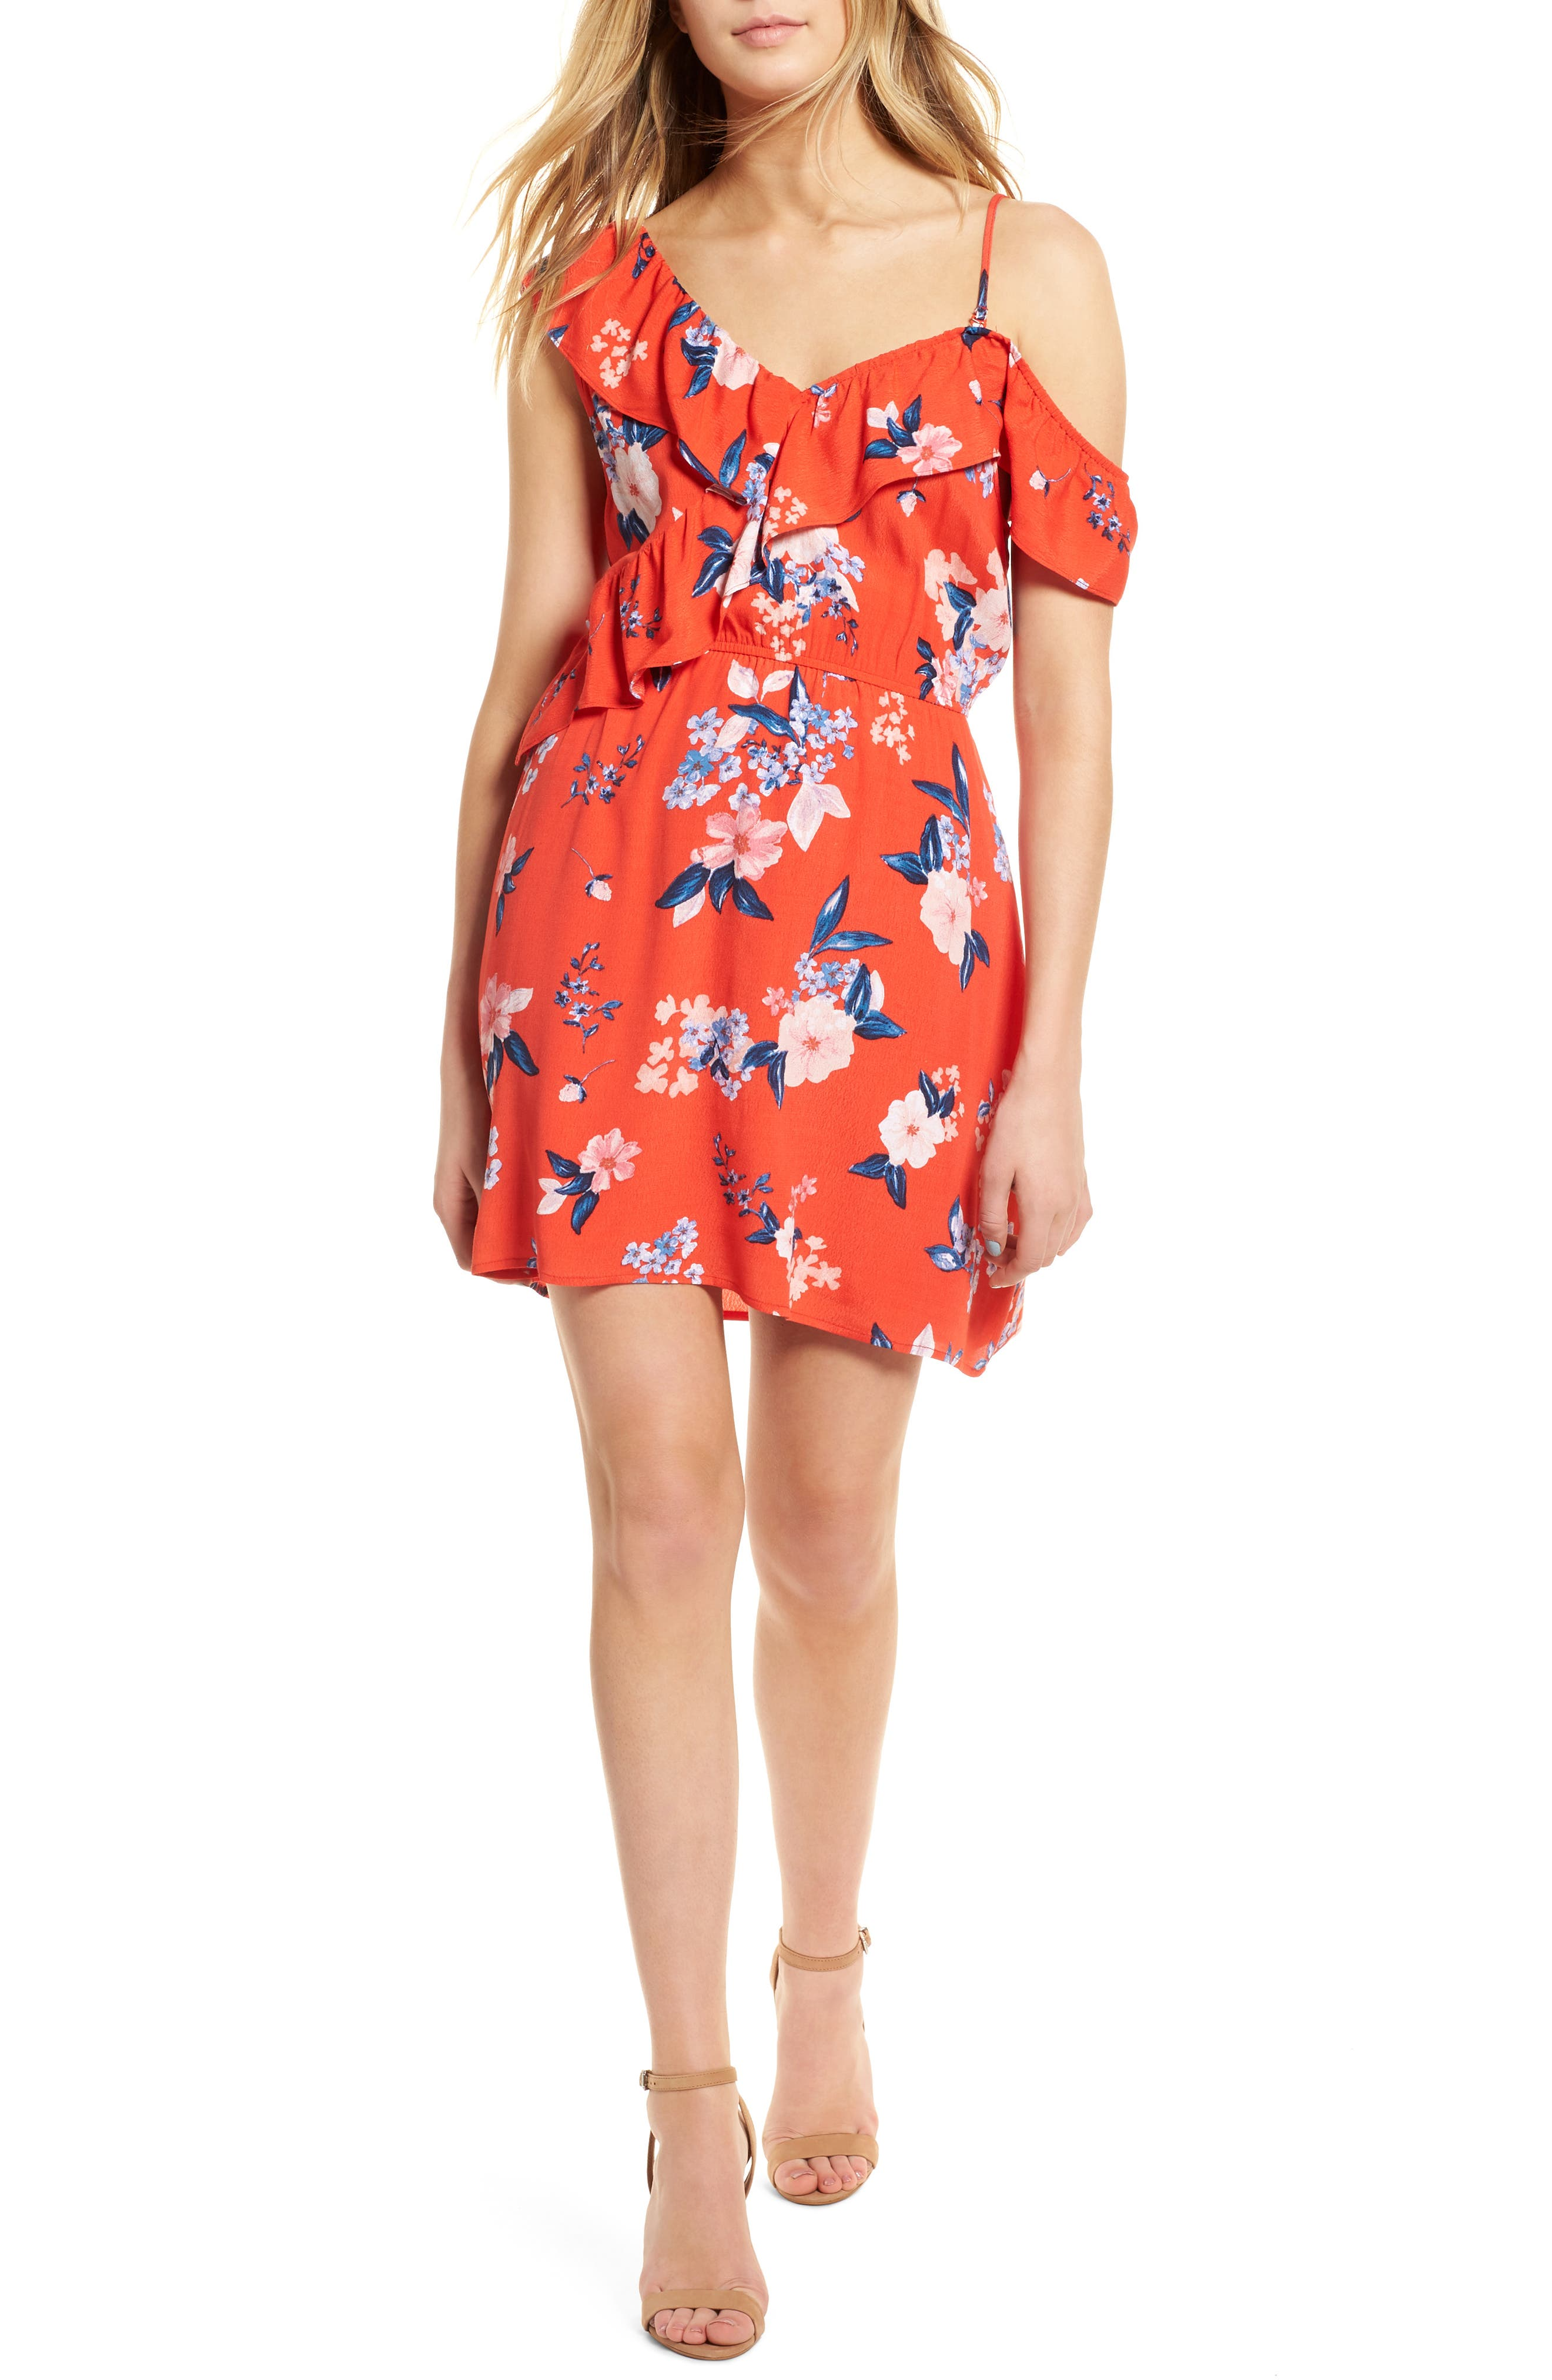 Cordetta Floral Asymmetrical Ruffle Dress,                         Main,                         color, POPPY RED